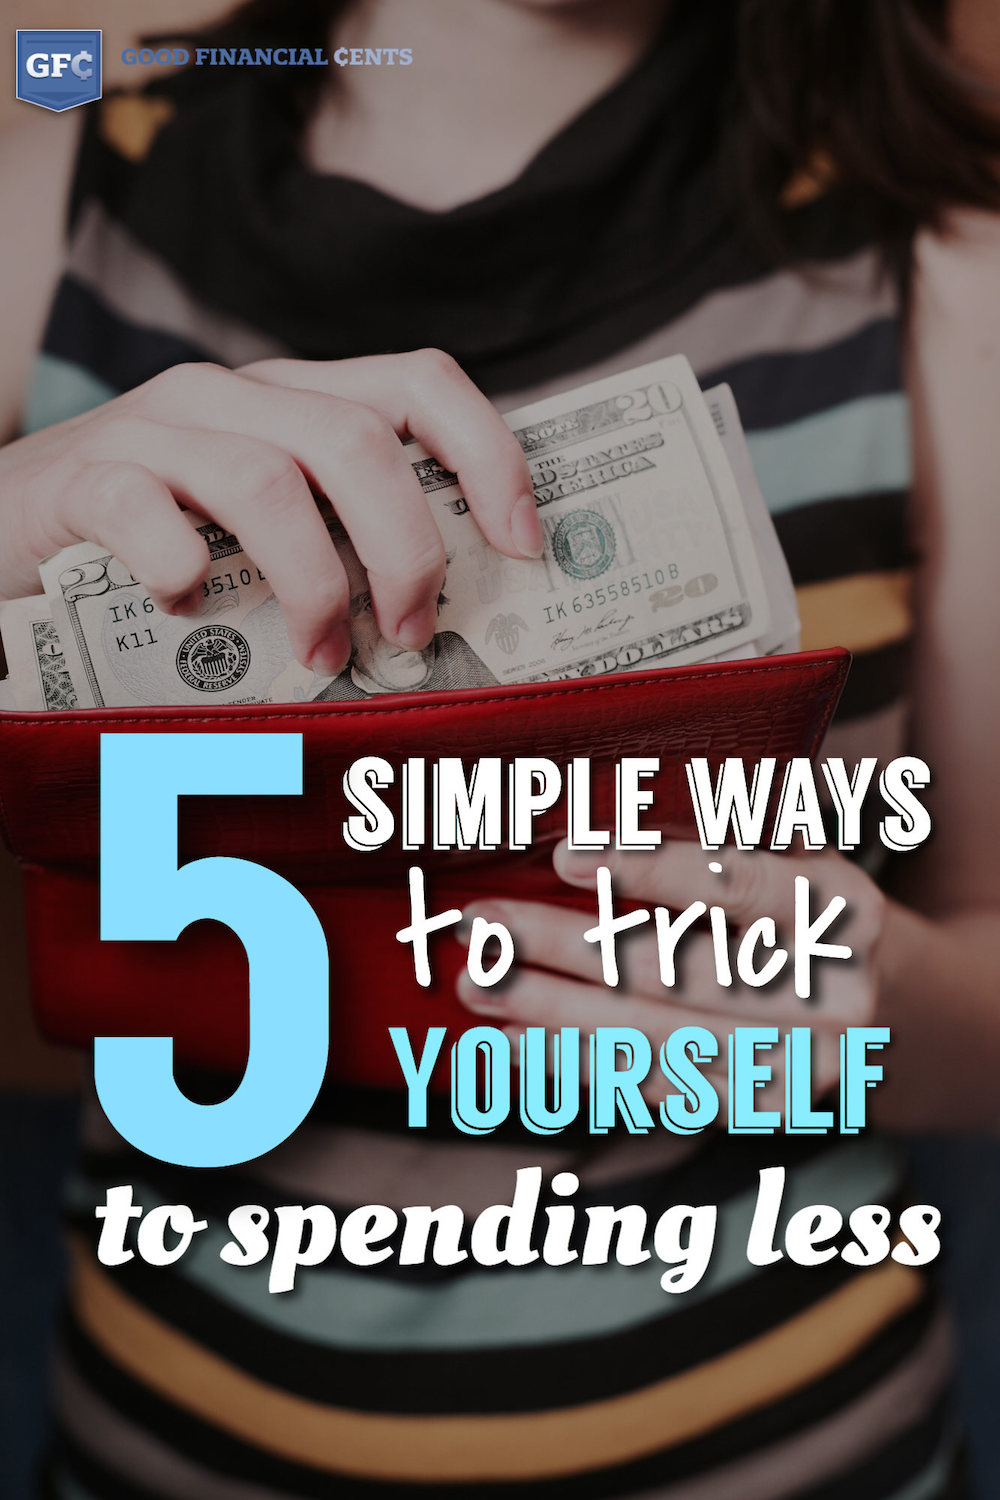 5 Simple Ways To Spend Less Money Tips Tricks Advice